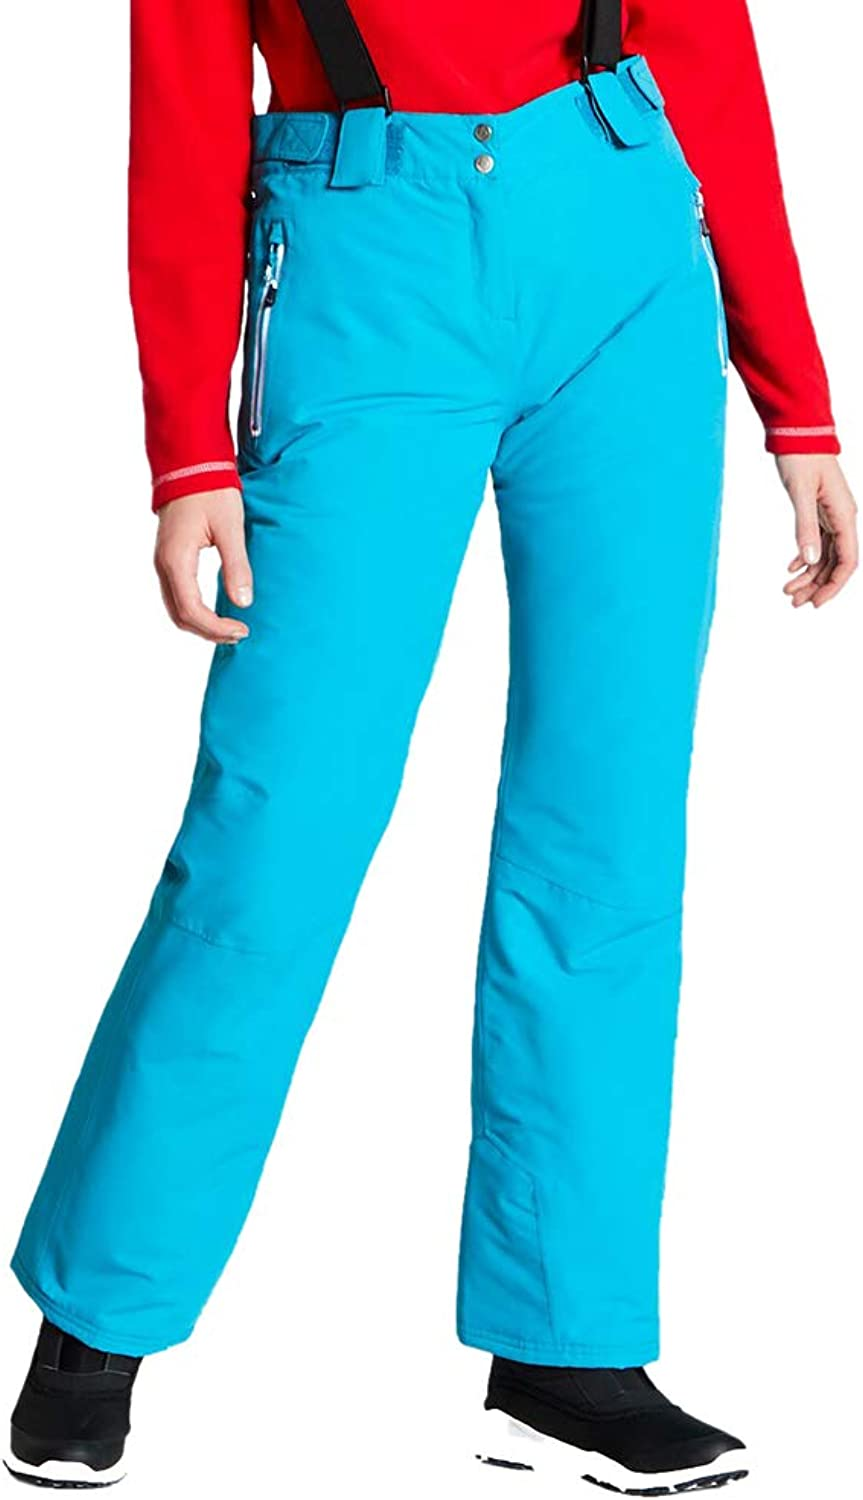 Dare 2b Damen Intrigue Pant Waterproof & Breathable Loft Insulated Hardwearing Ski & Snowboard Salopette Trousers with High Backed Waist and Integrated Snow Gaiters Lifthose